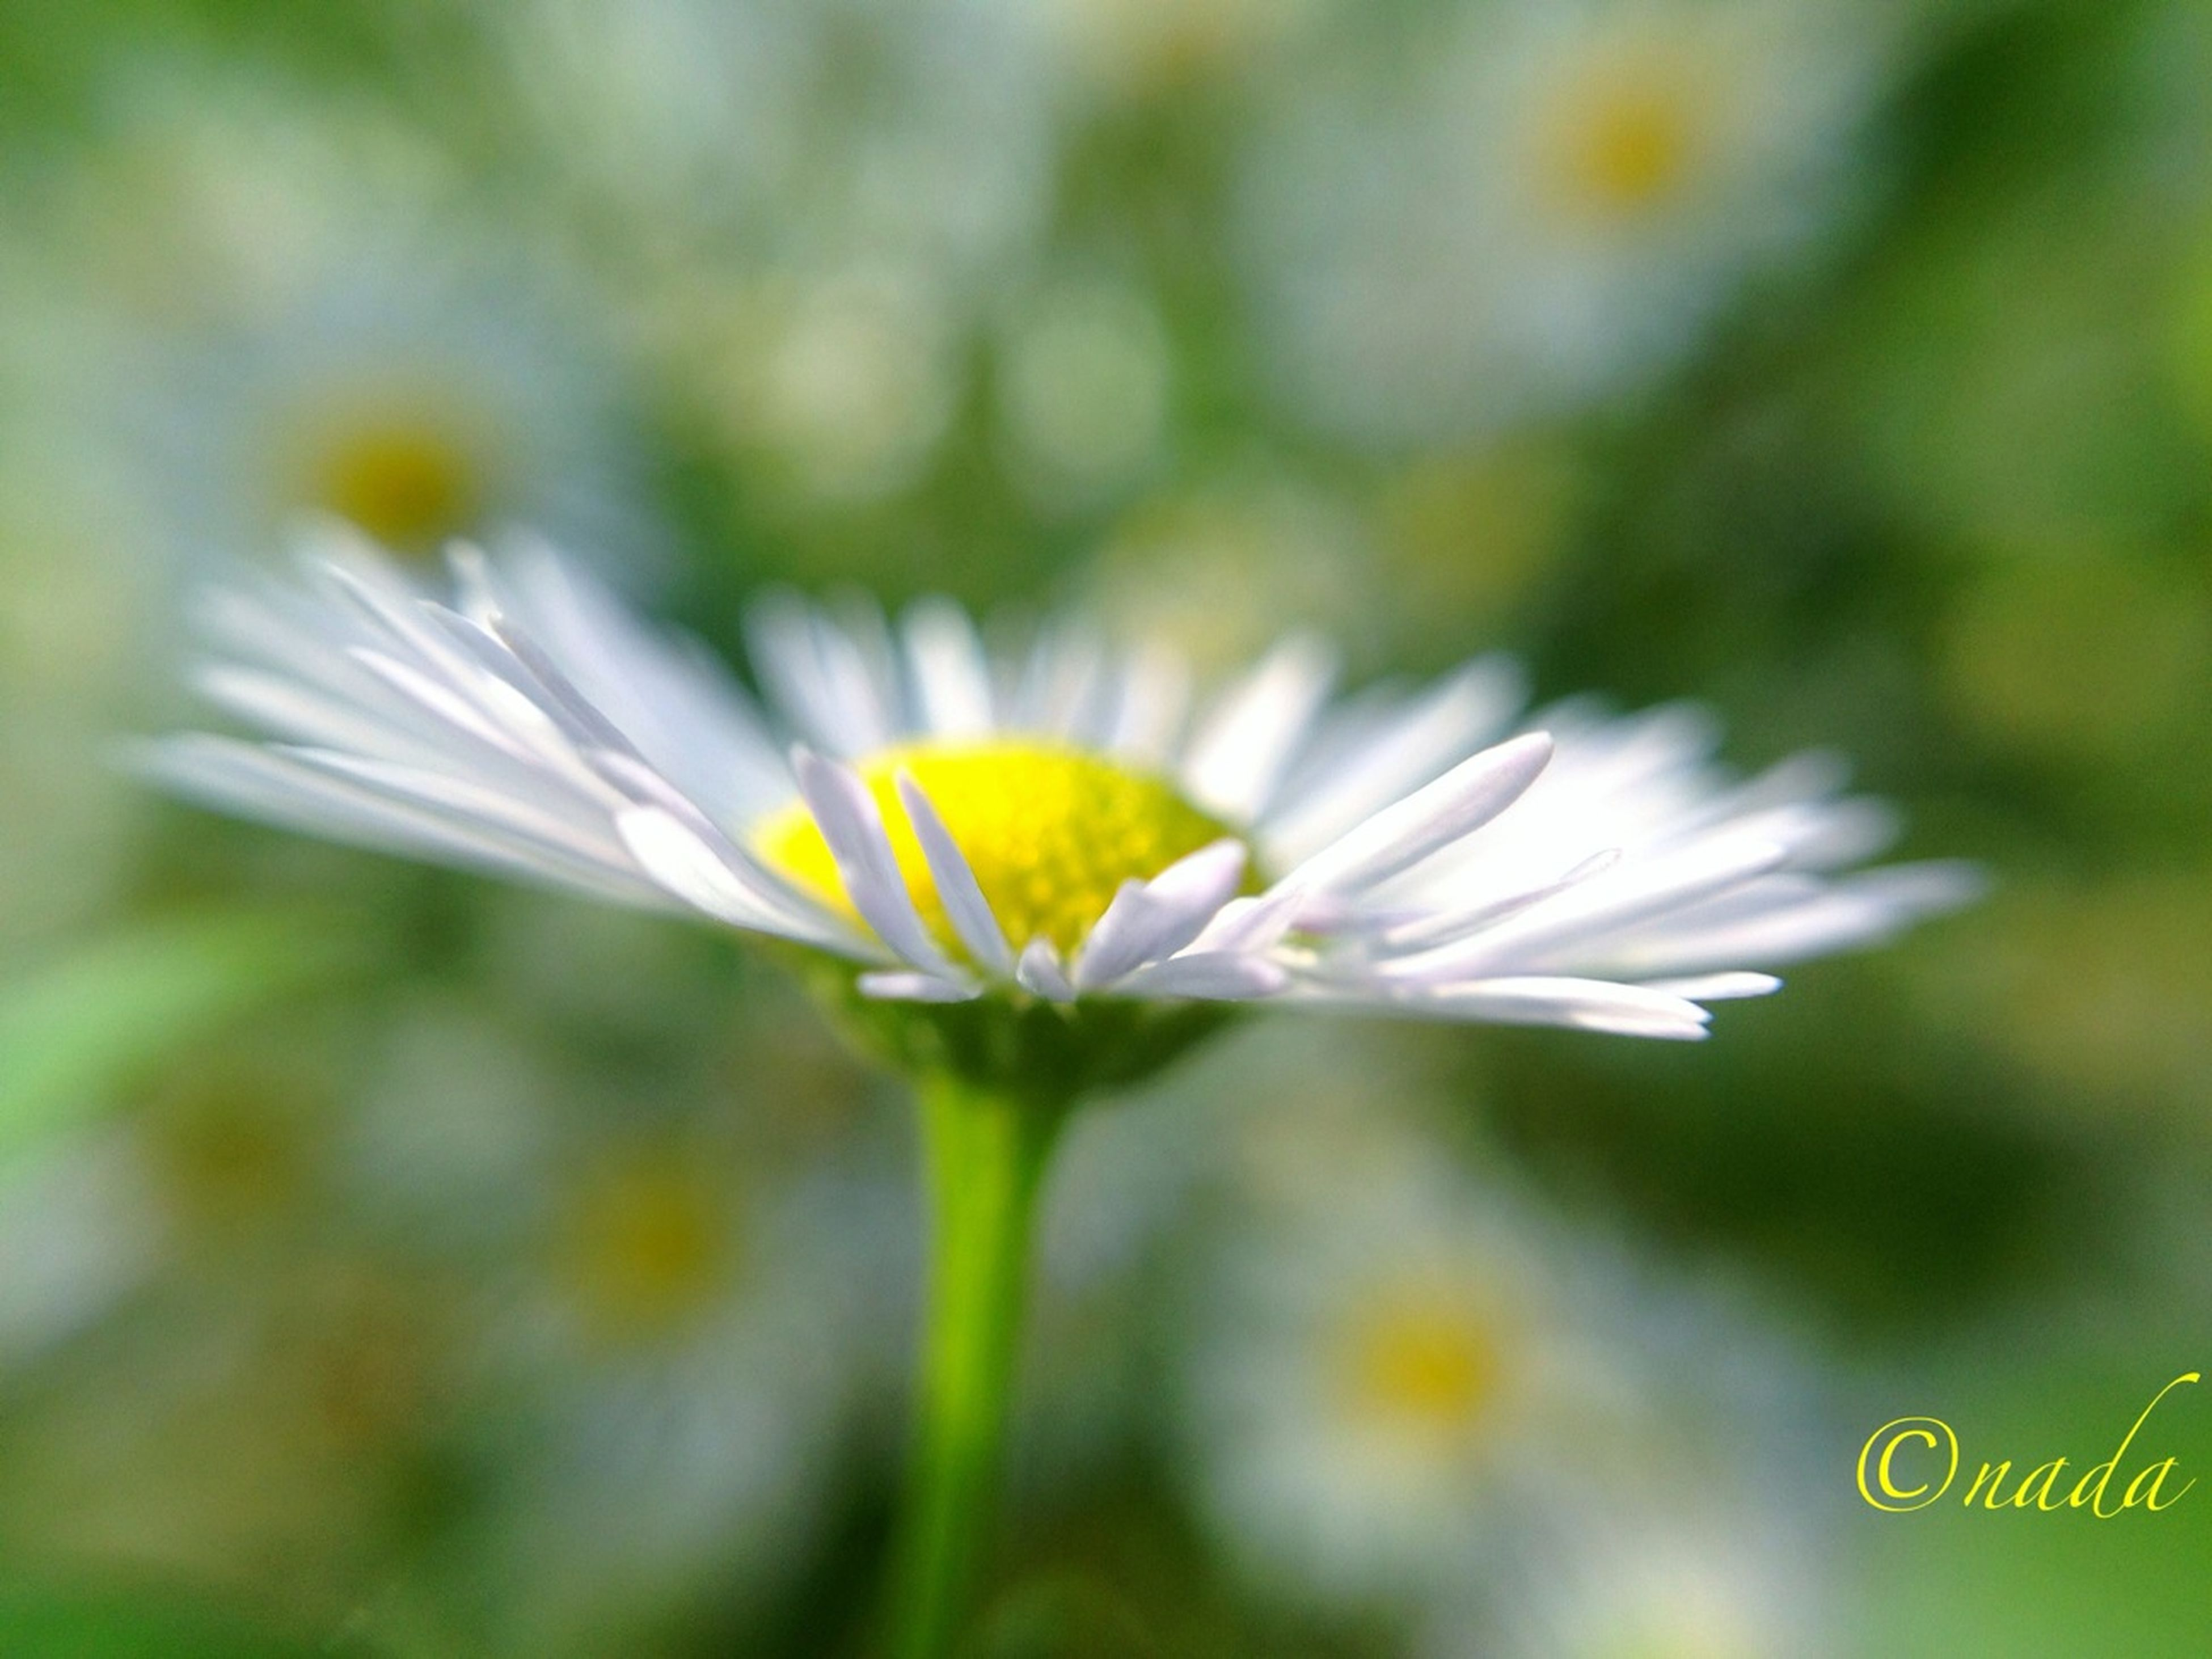 flower, petal, fragility, freshness, flower head, insect, growth, one animal, animal themes, beauty in nature, close-up, focus on foreground, white color, yellow, pollen, nature, wildlife, animals in the wild, single flower, blooming